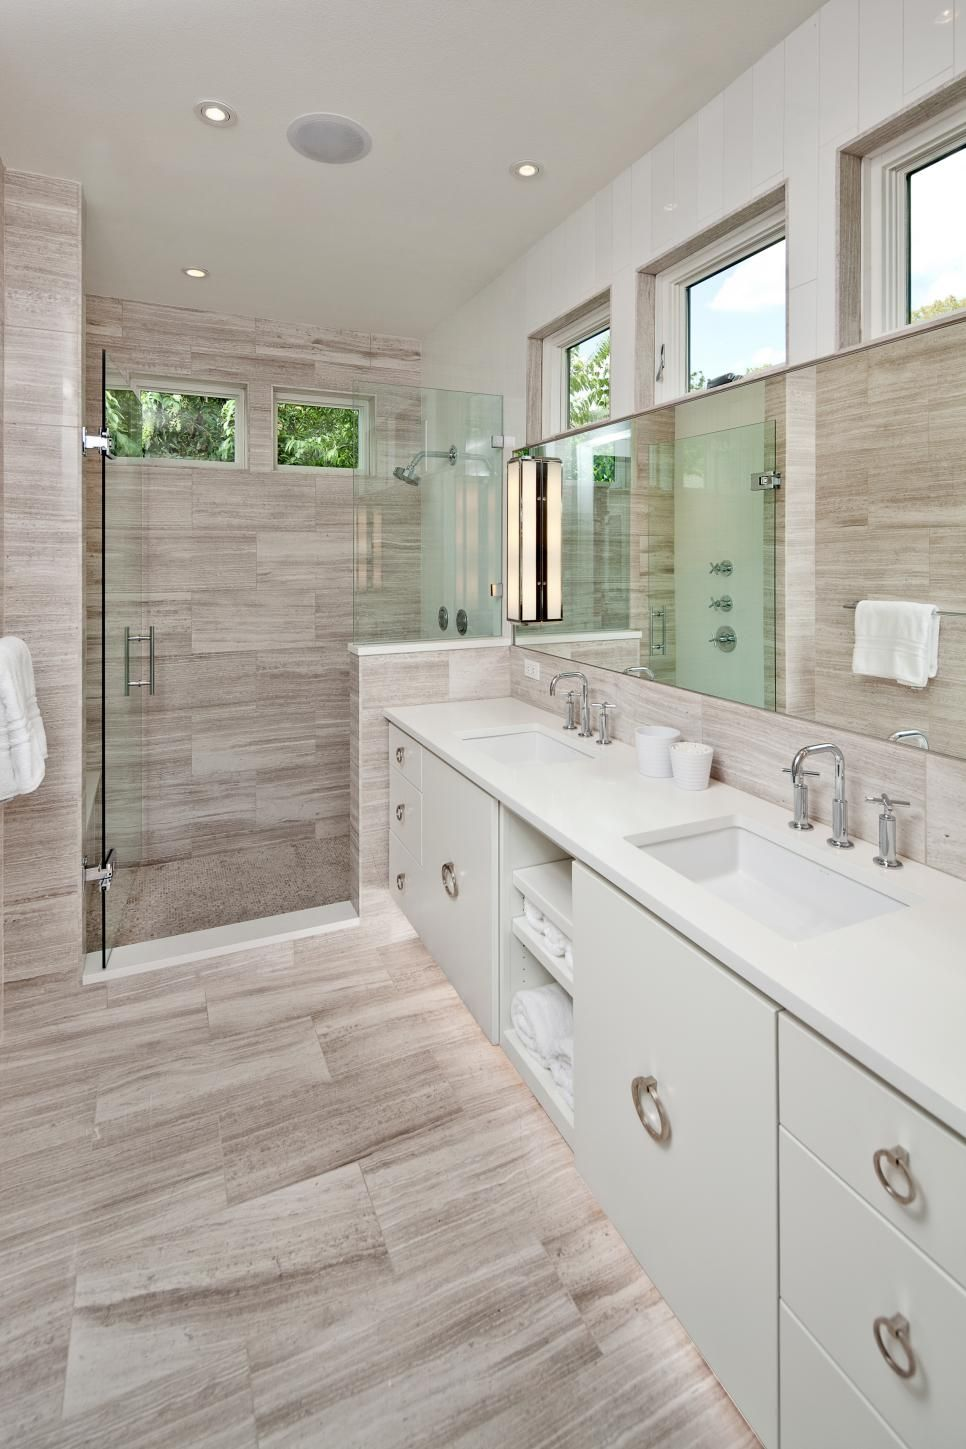 Gray Wood Look Tile For The Walls And Floors Crisply Contrasts The White Vanity In This Spa